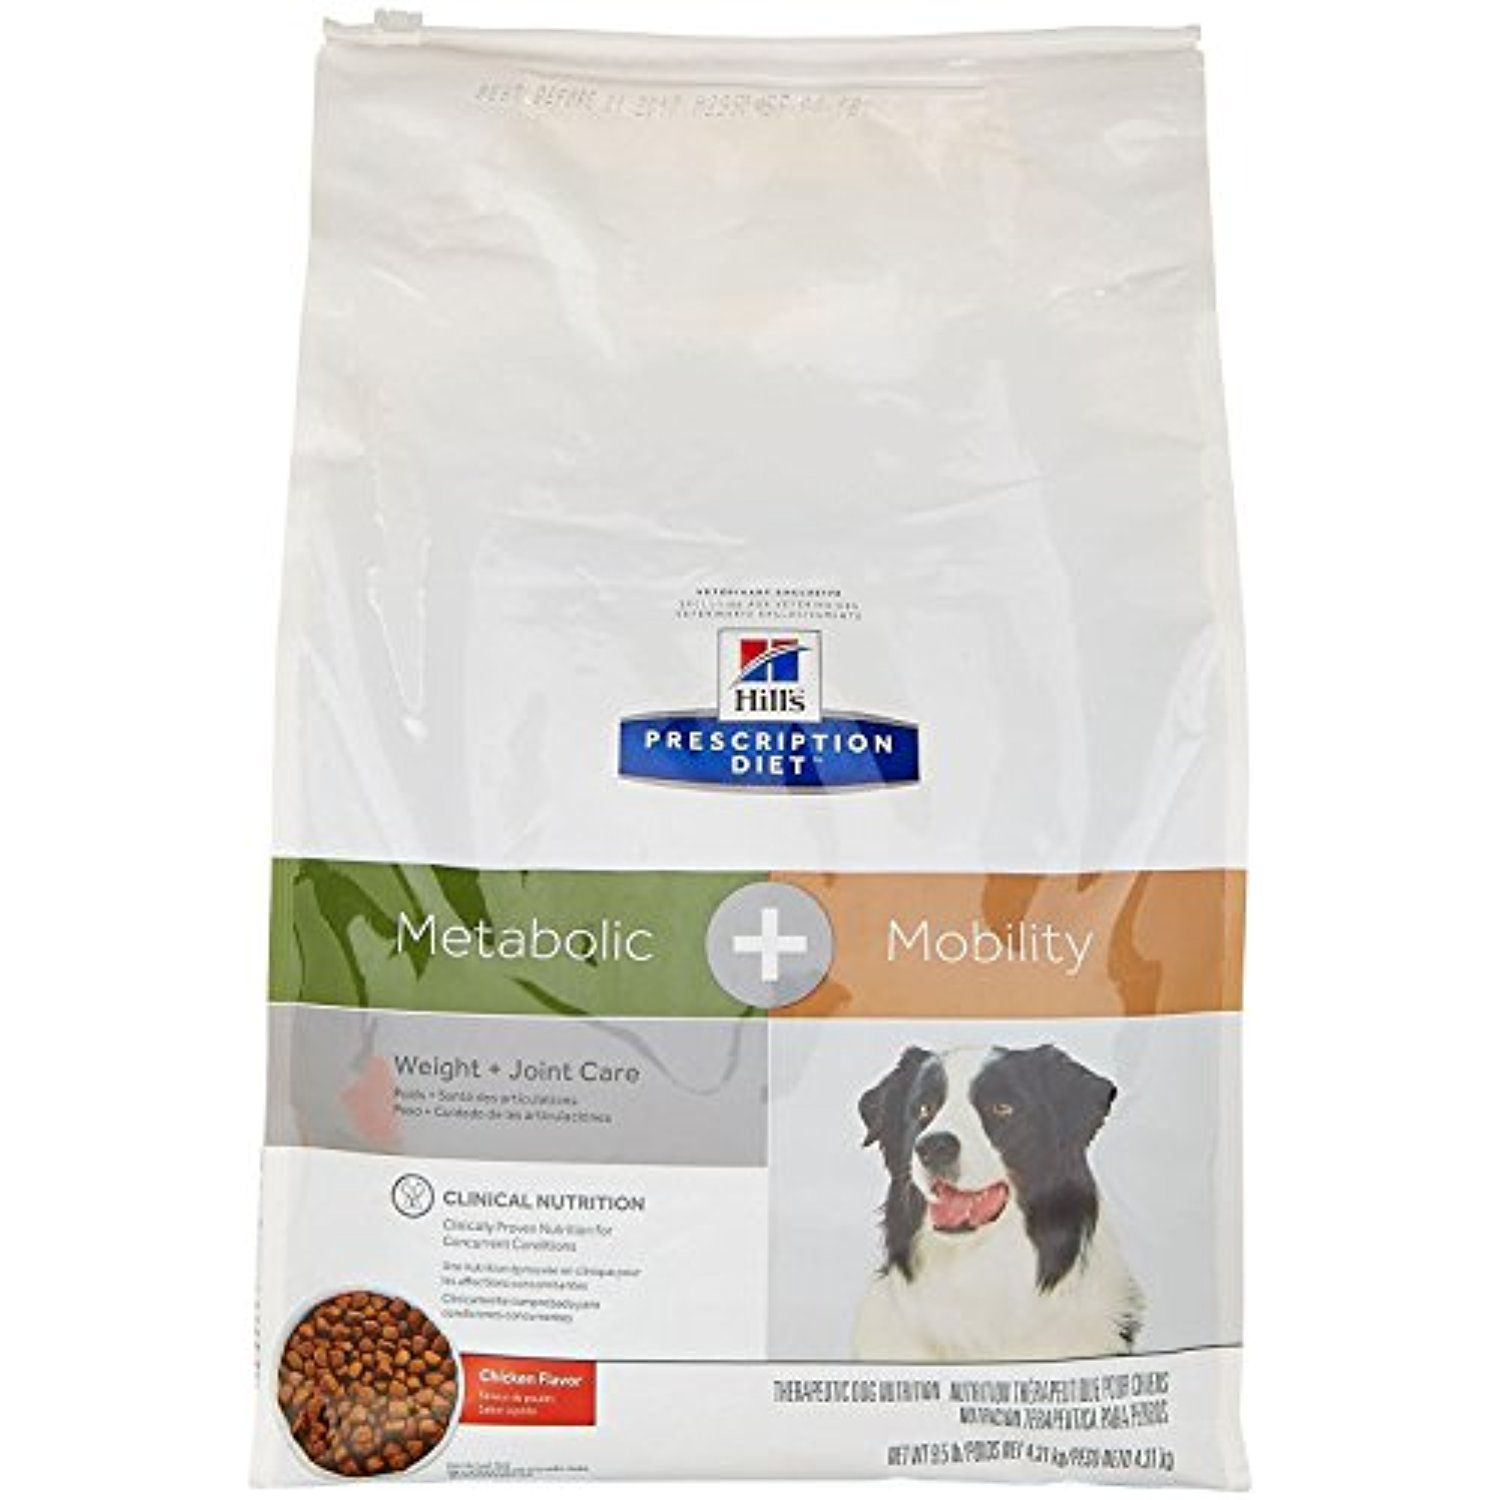 Hill S Prescription Diet Metabolic Mobility Canine Chicken Flavor 9 5lbs You Can Read More Review Hills Prescription Diet Prescription Chicken Flavors